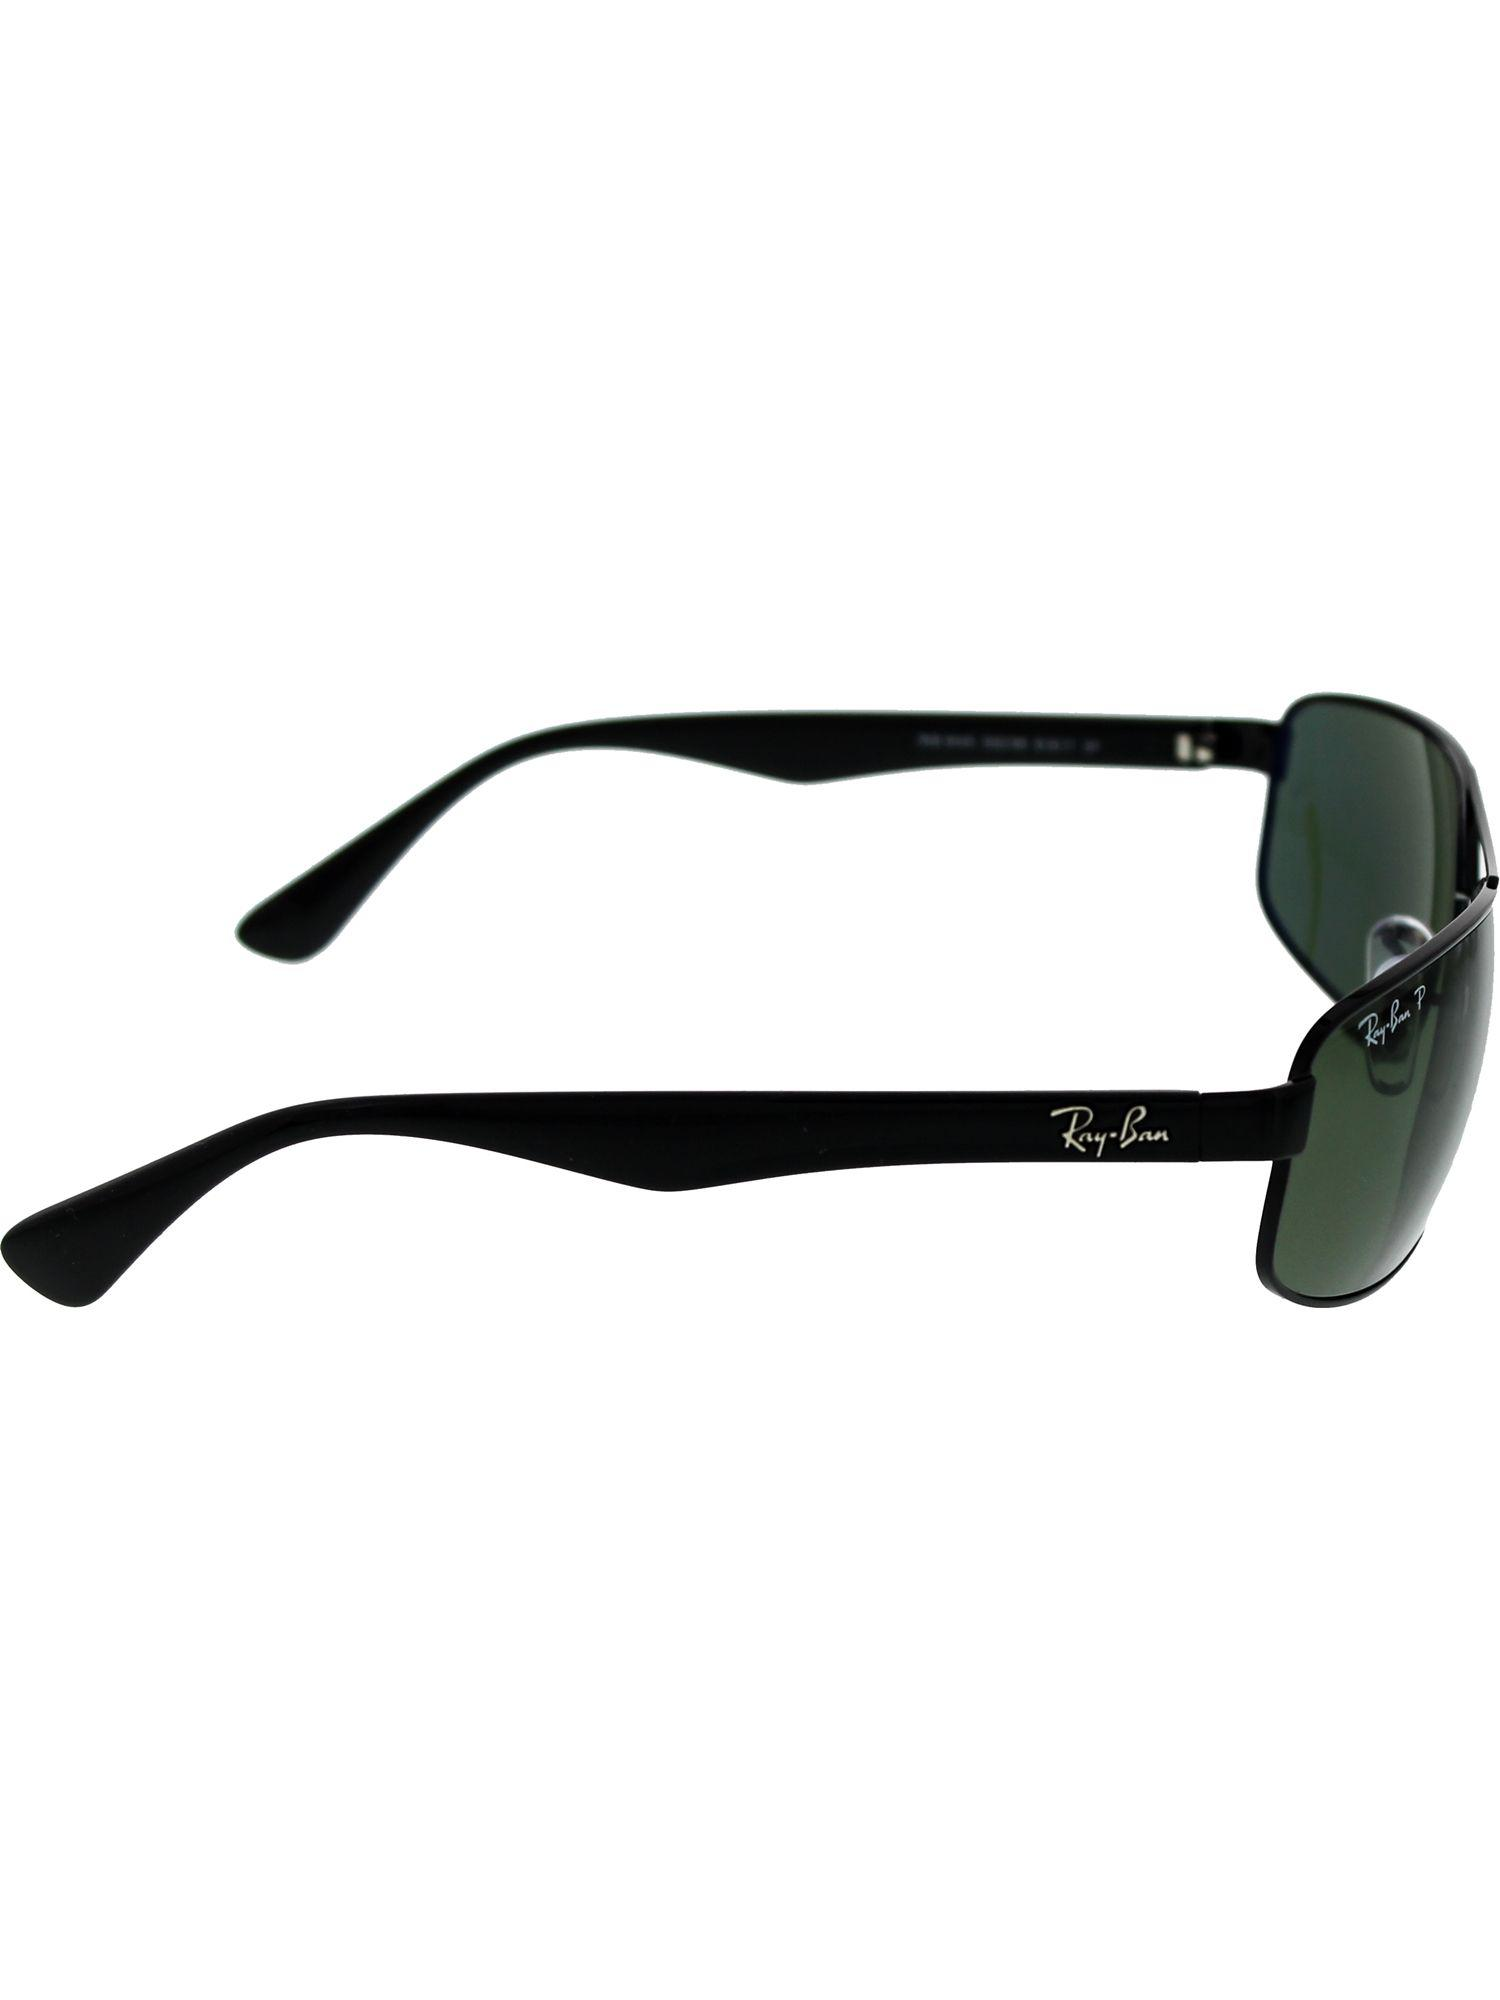 183d368d0ff Ray-Ban - Multicolor Rb3445 Sunglasses for Men - Lyst. View fullscreen